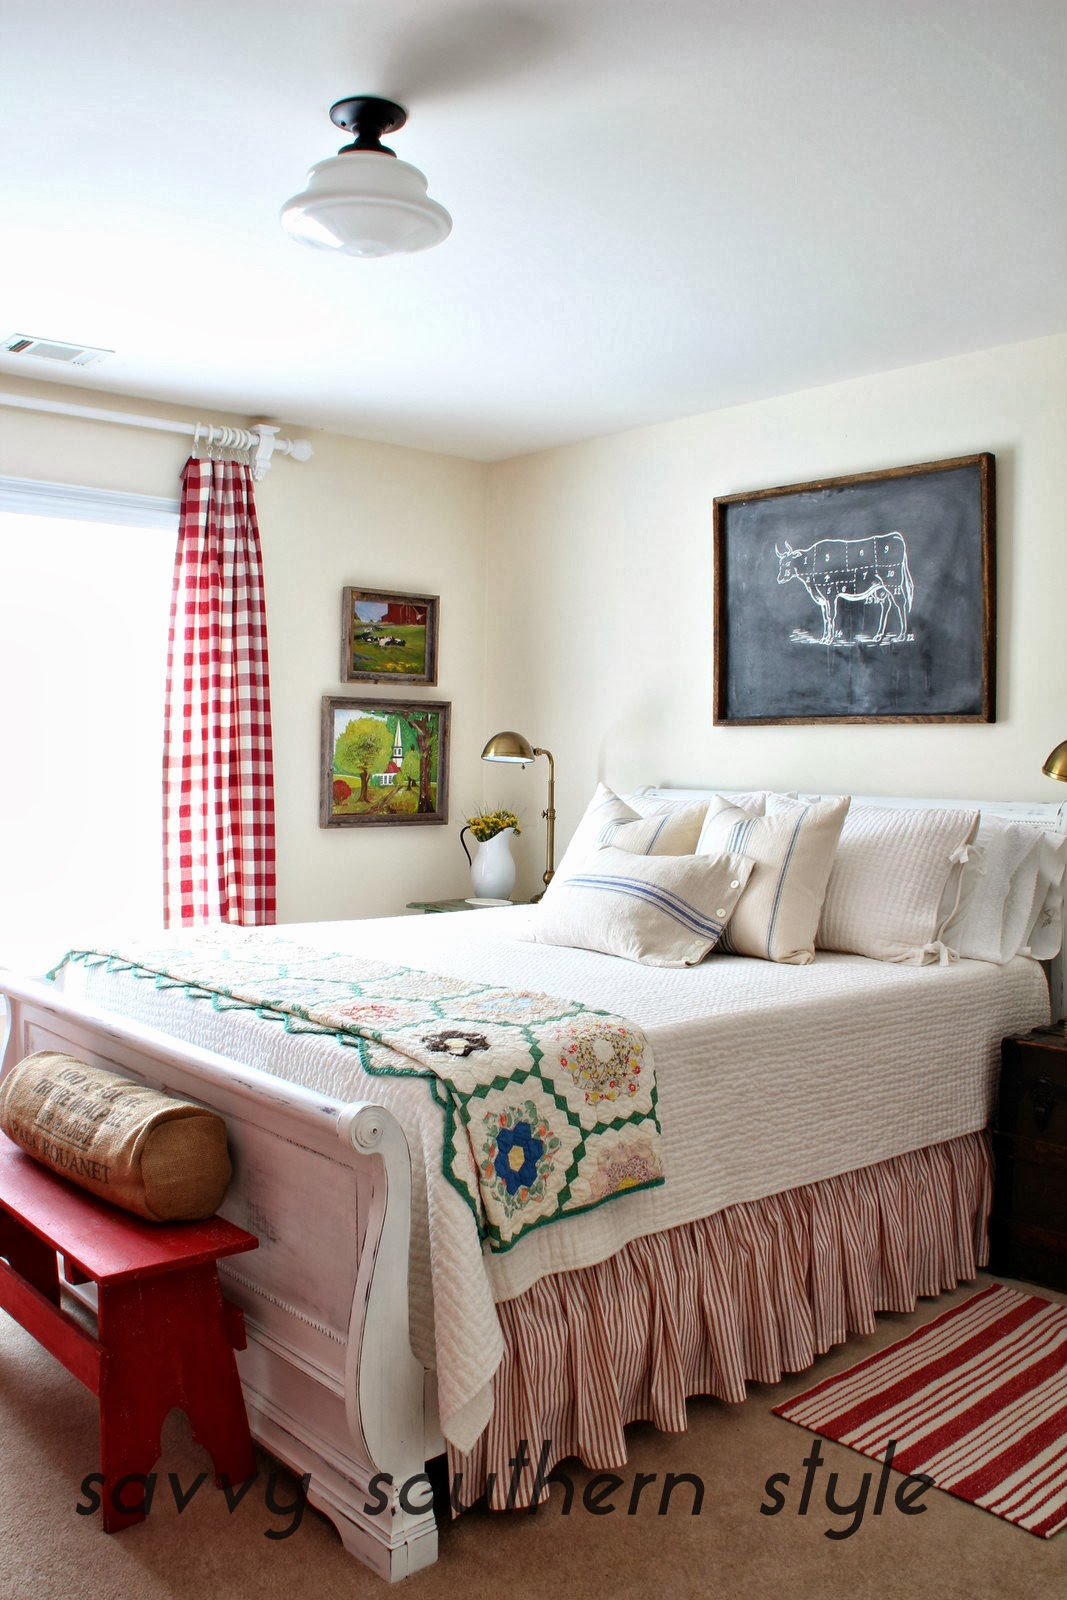 Southern Farmhouse Bedroom Ideas: Savvy Southern Style : A New Cow.....again